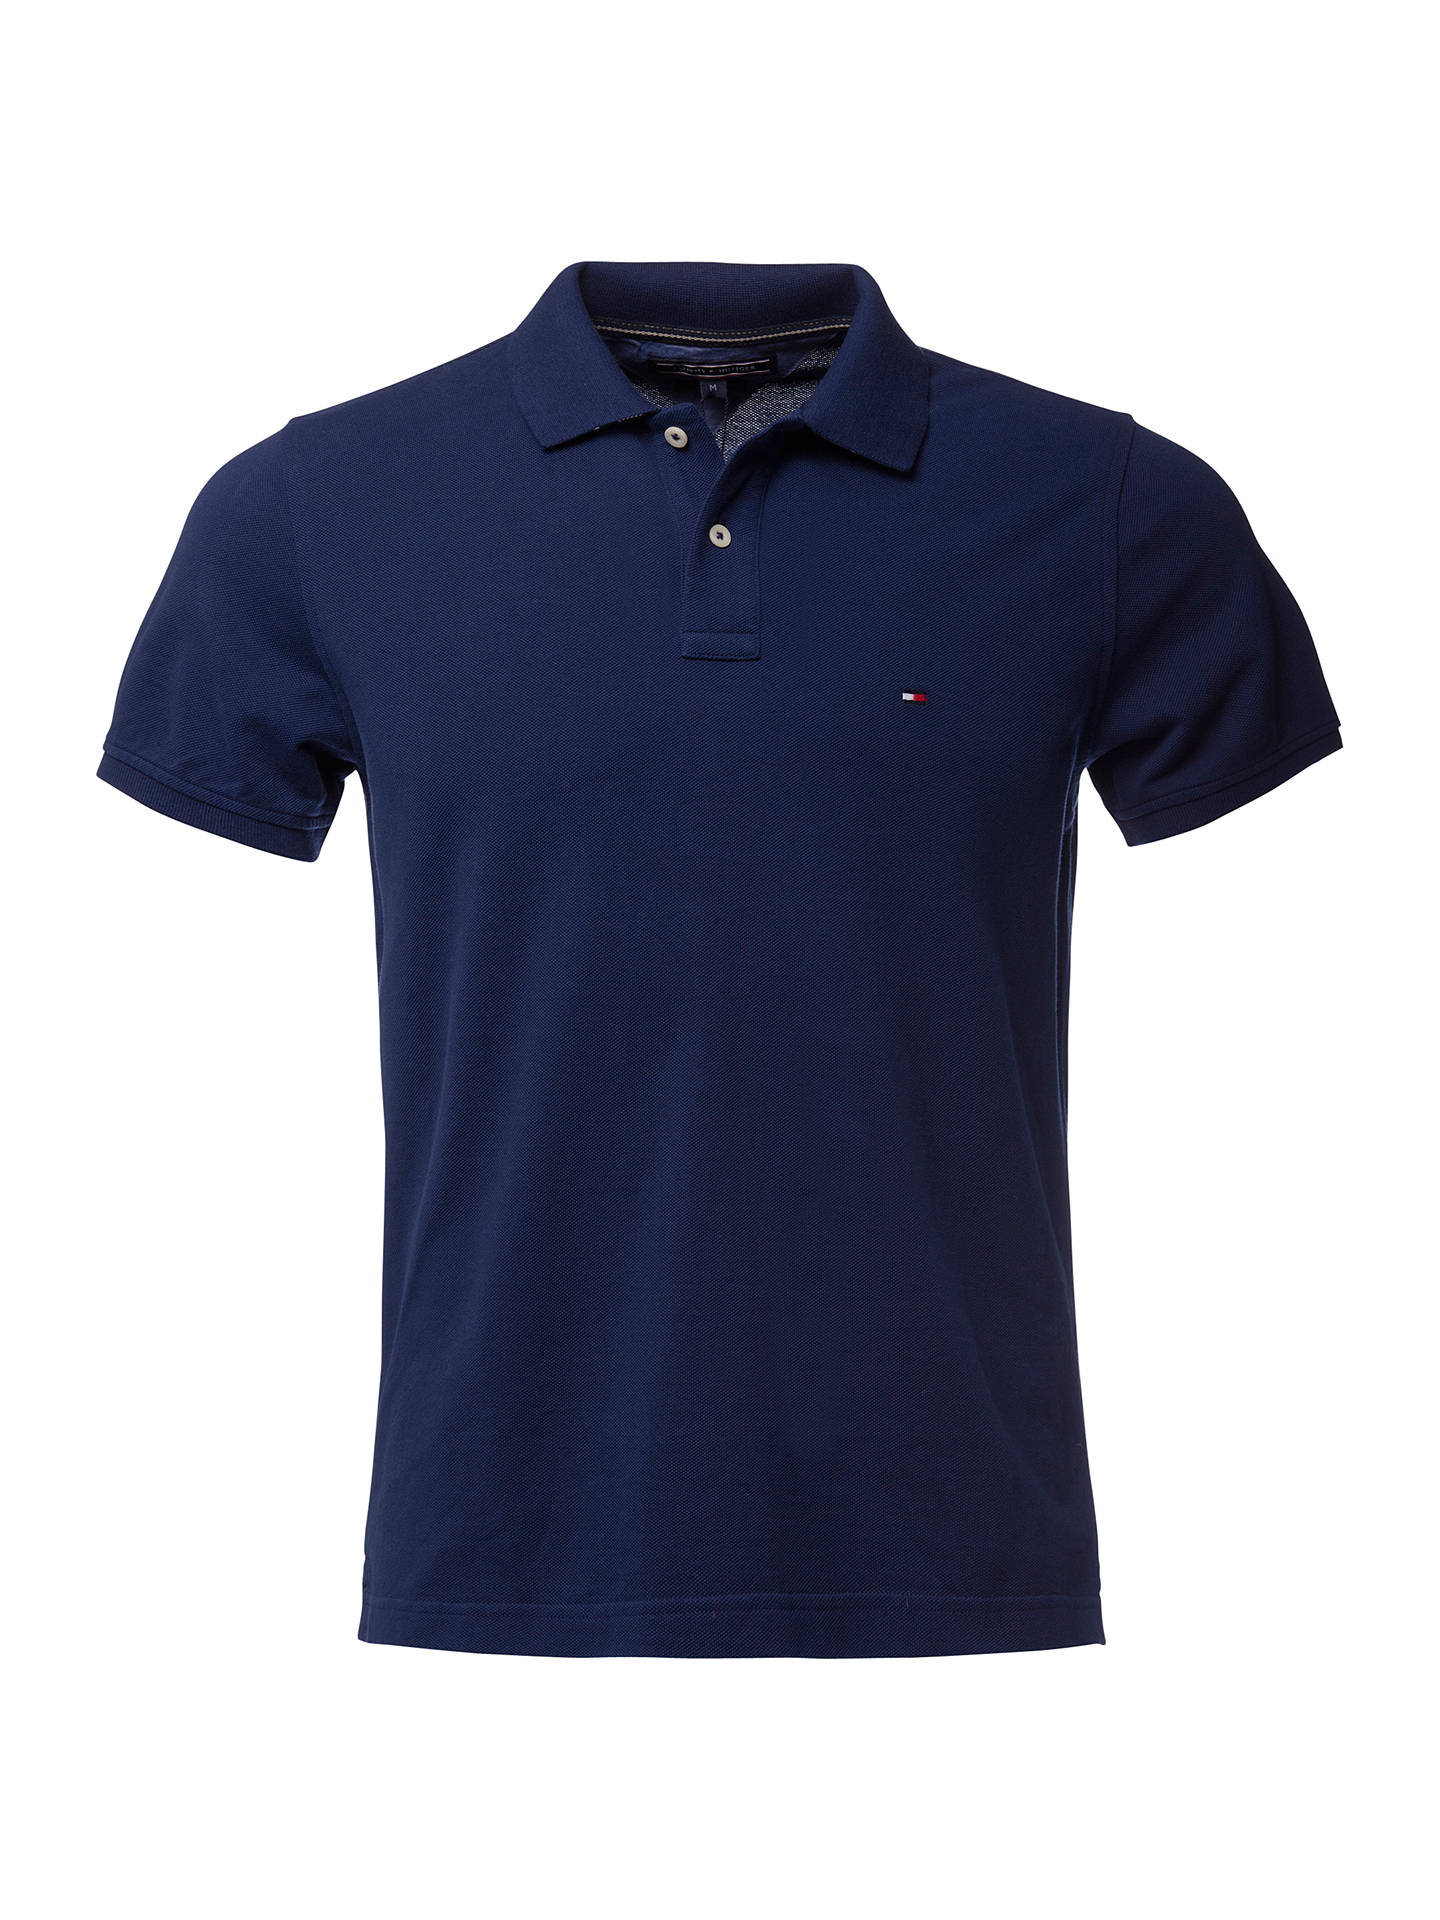 3bf61593 Buy Tommy Hilfiger Slim Fit Polo Shirt, Medieval Blue, S Online at  johnlewis.